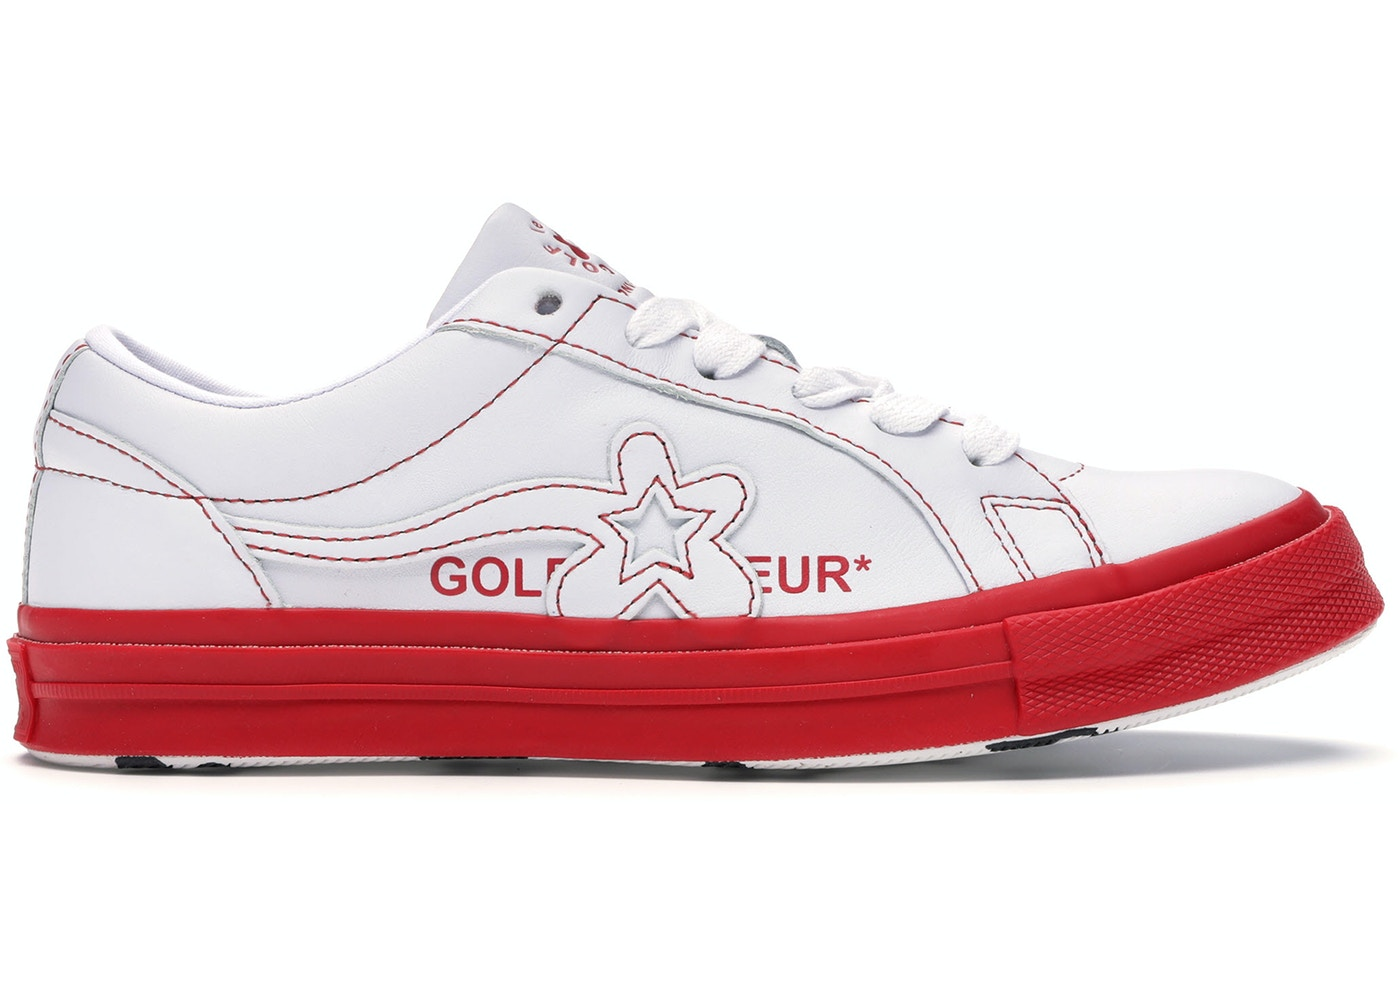 saltar golpear tira  Converse One Star Ox Golf Le Fleur Color Block Pack Red - 164026C